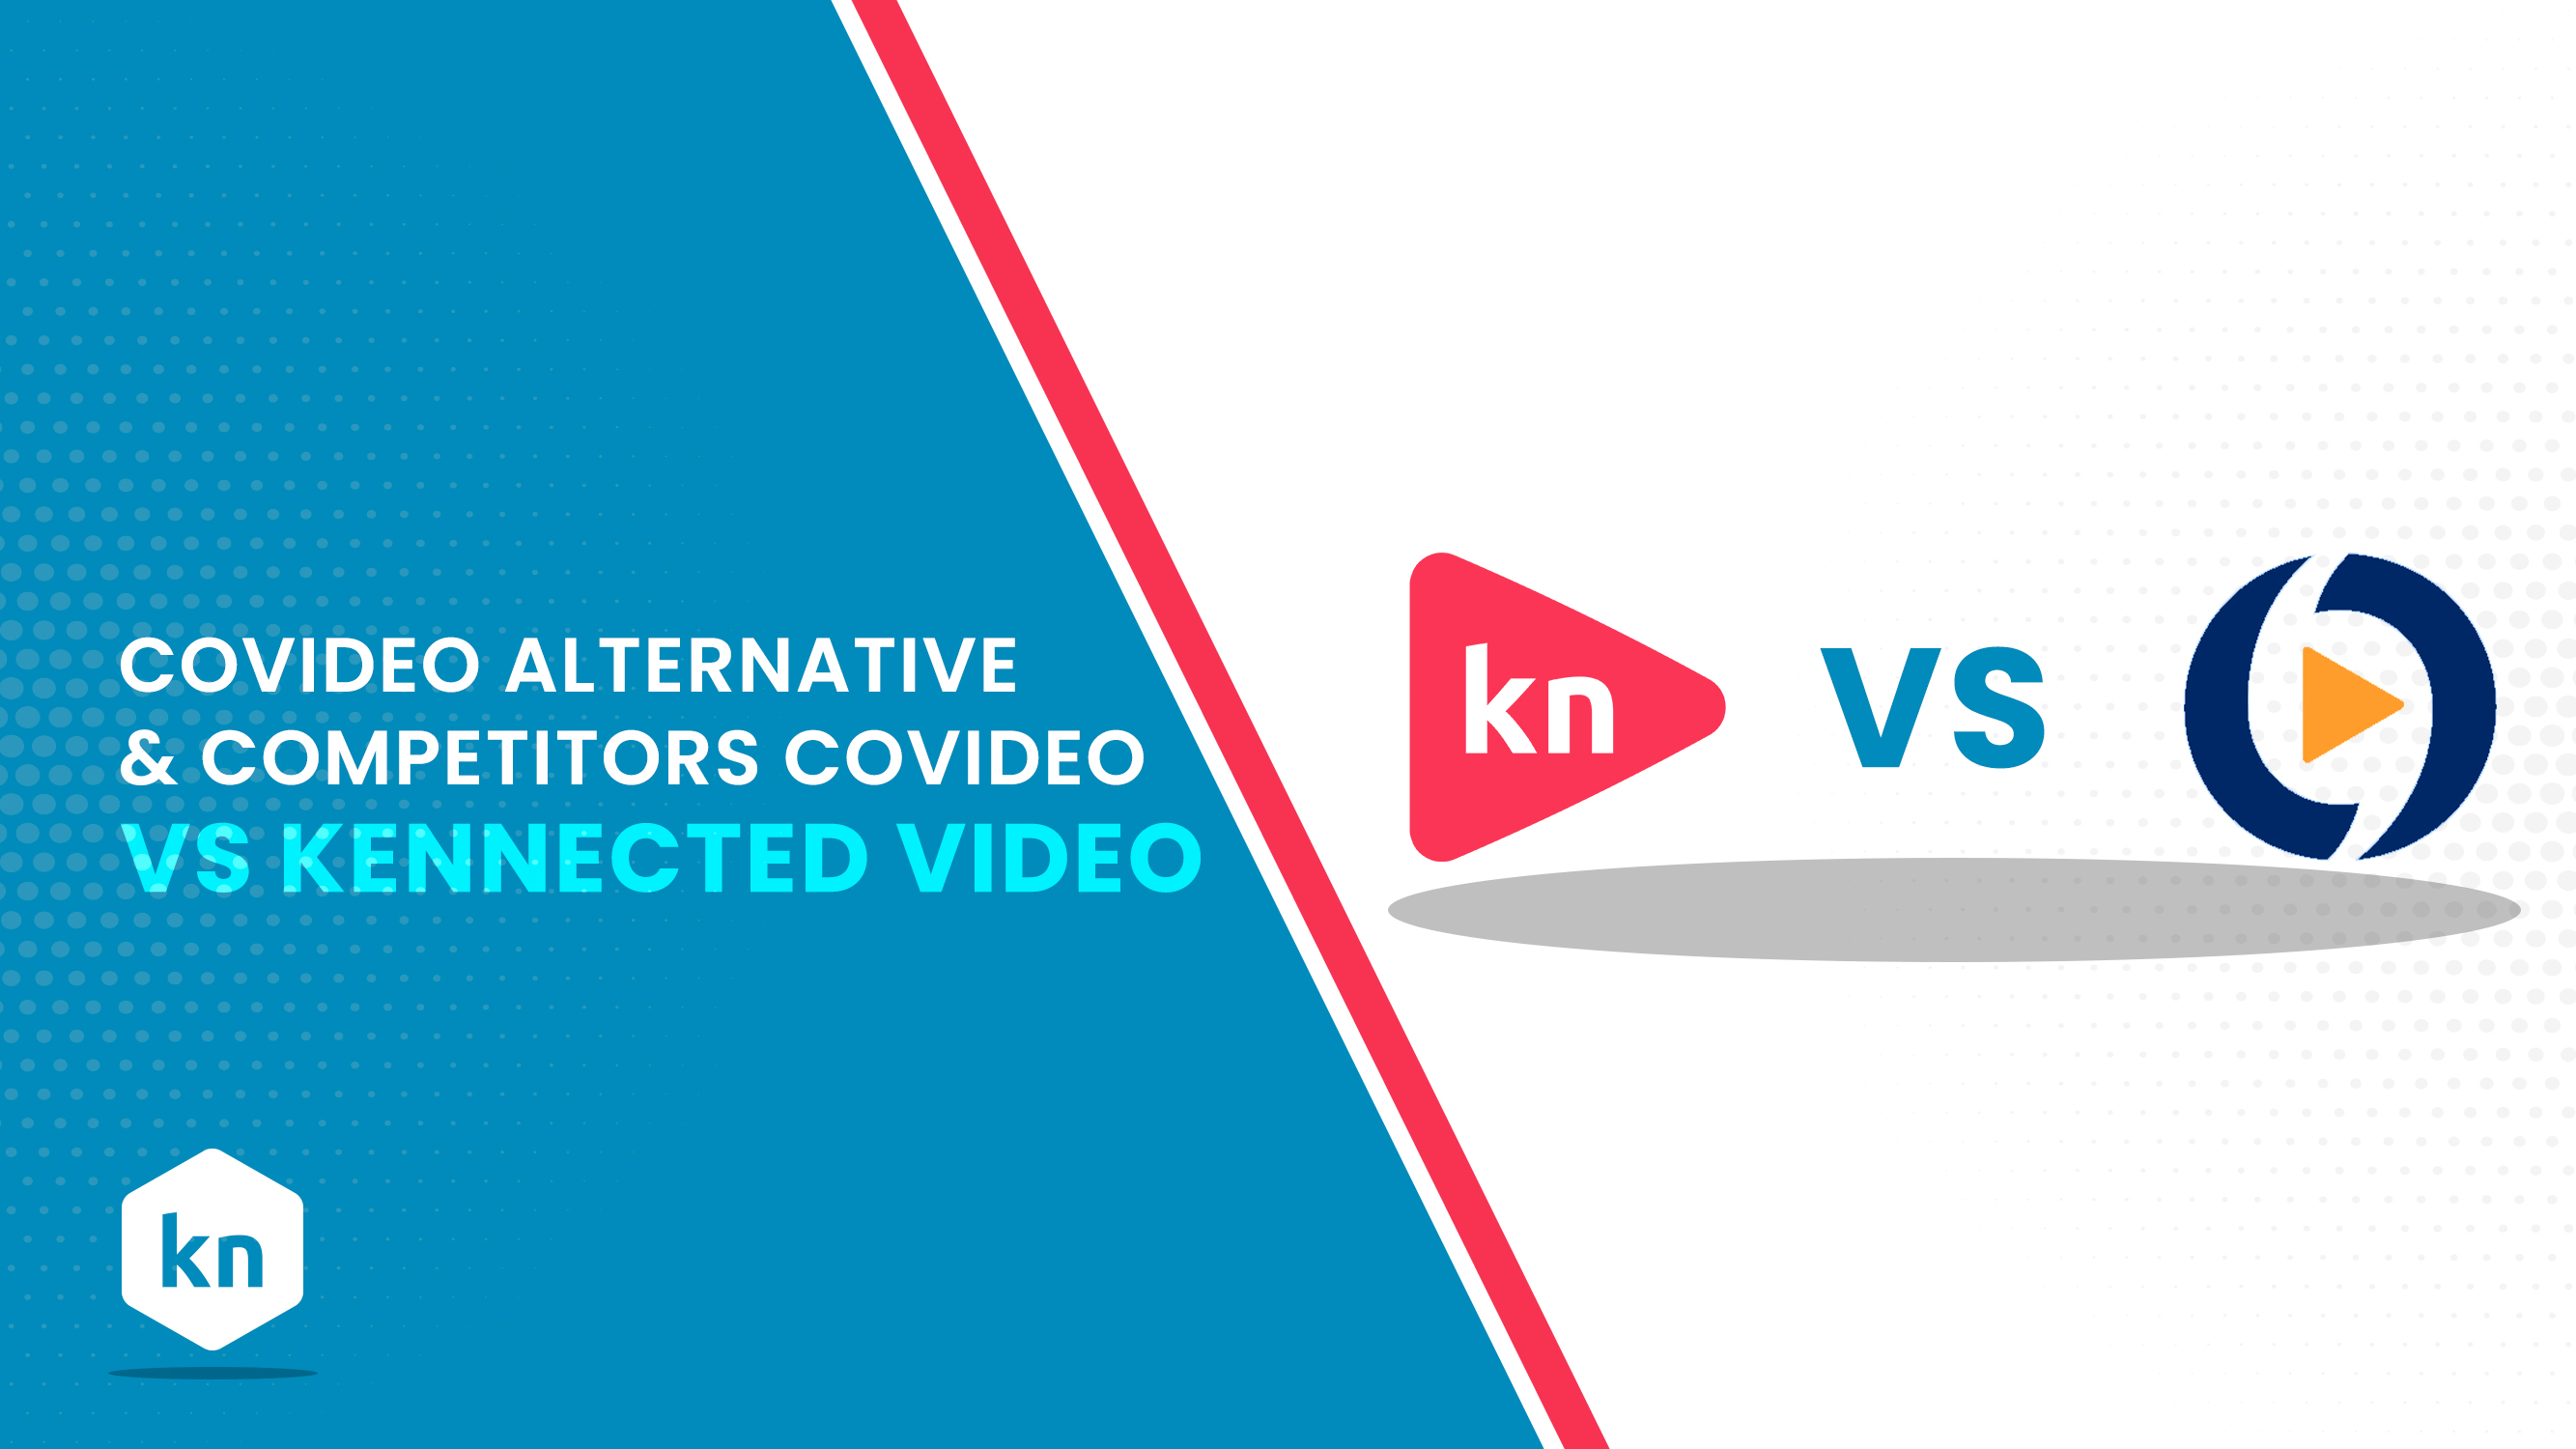 Covideo的替代产品和竞争对手 | Covideo Vs. Kennected Video